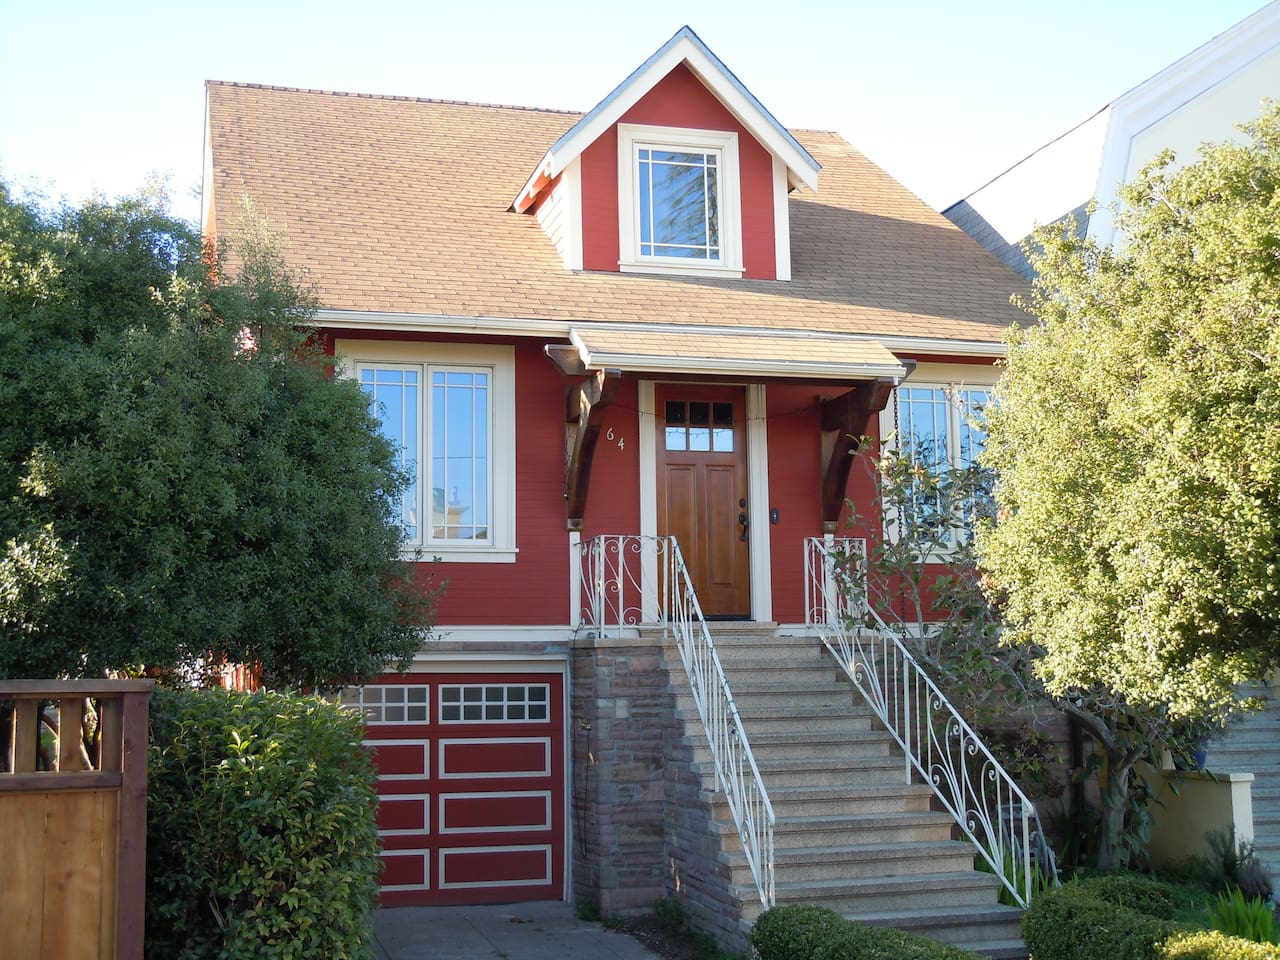 Welcome to San Francisco! Four-bedroom fully remodeled 1912 Craftsman home